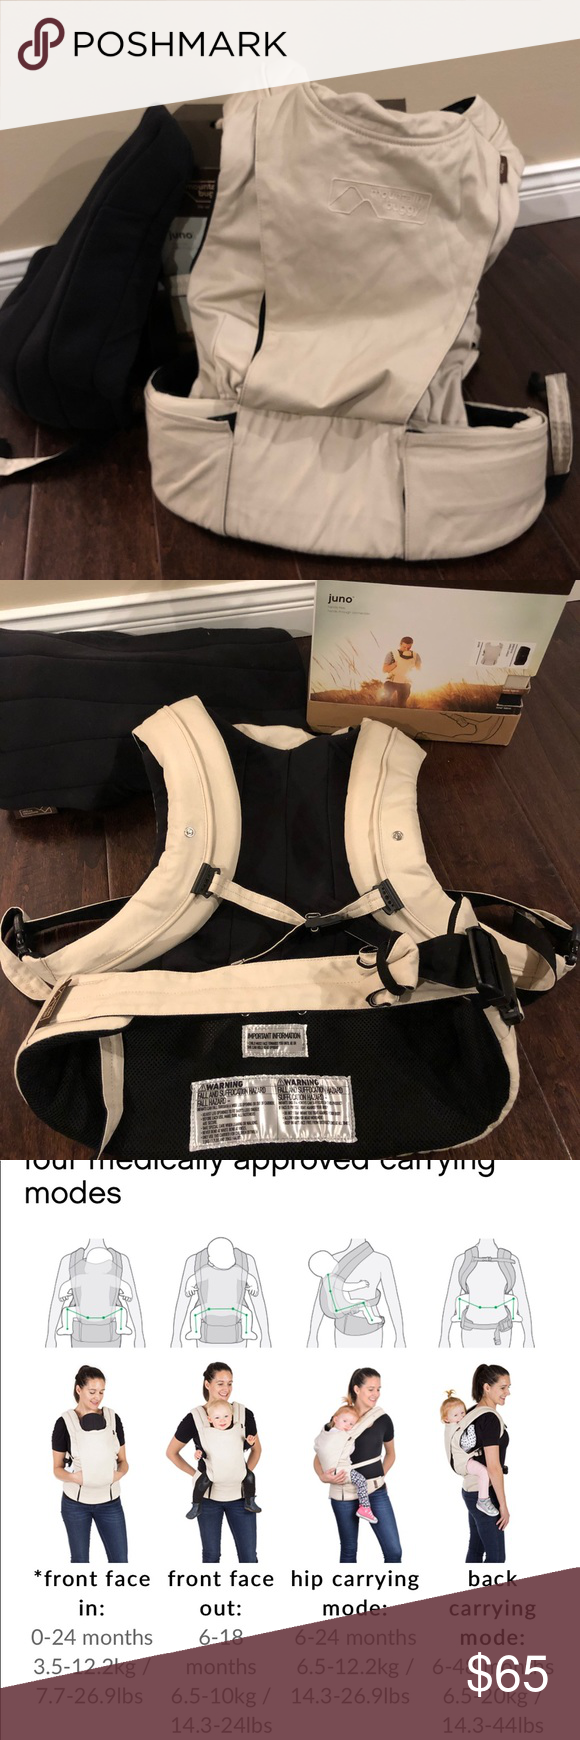 Mountain Buggy Juno Baby Carrier Euc Sand Color With Black Infant Insert Only Converse Chuck Taylor High Top Sneaker Baby Carrier Converse High Top Sneaker